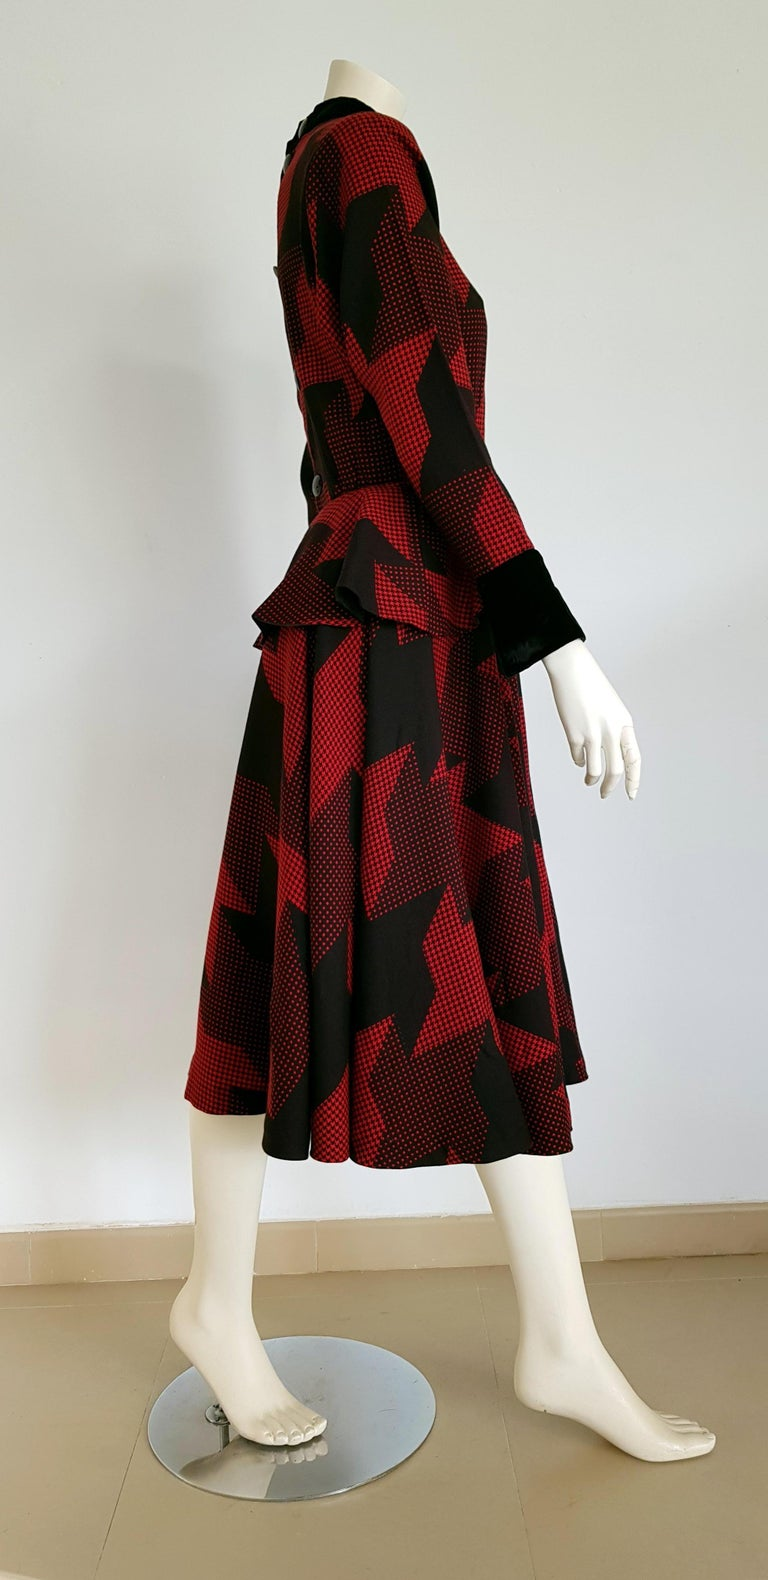 Christian DIOR red and black wool, with black velvet cuffs and collar, with Dior velvet leather belt, geometric fabric designs, godet dress - Unworn, New.  SIZE: equivalent to about Small / Medium, please review approx measurements as follows in cm: